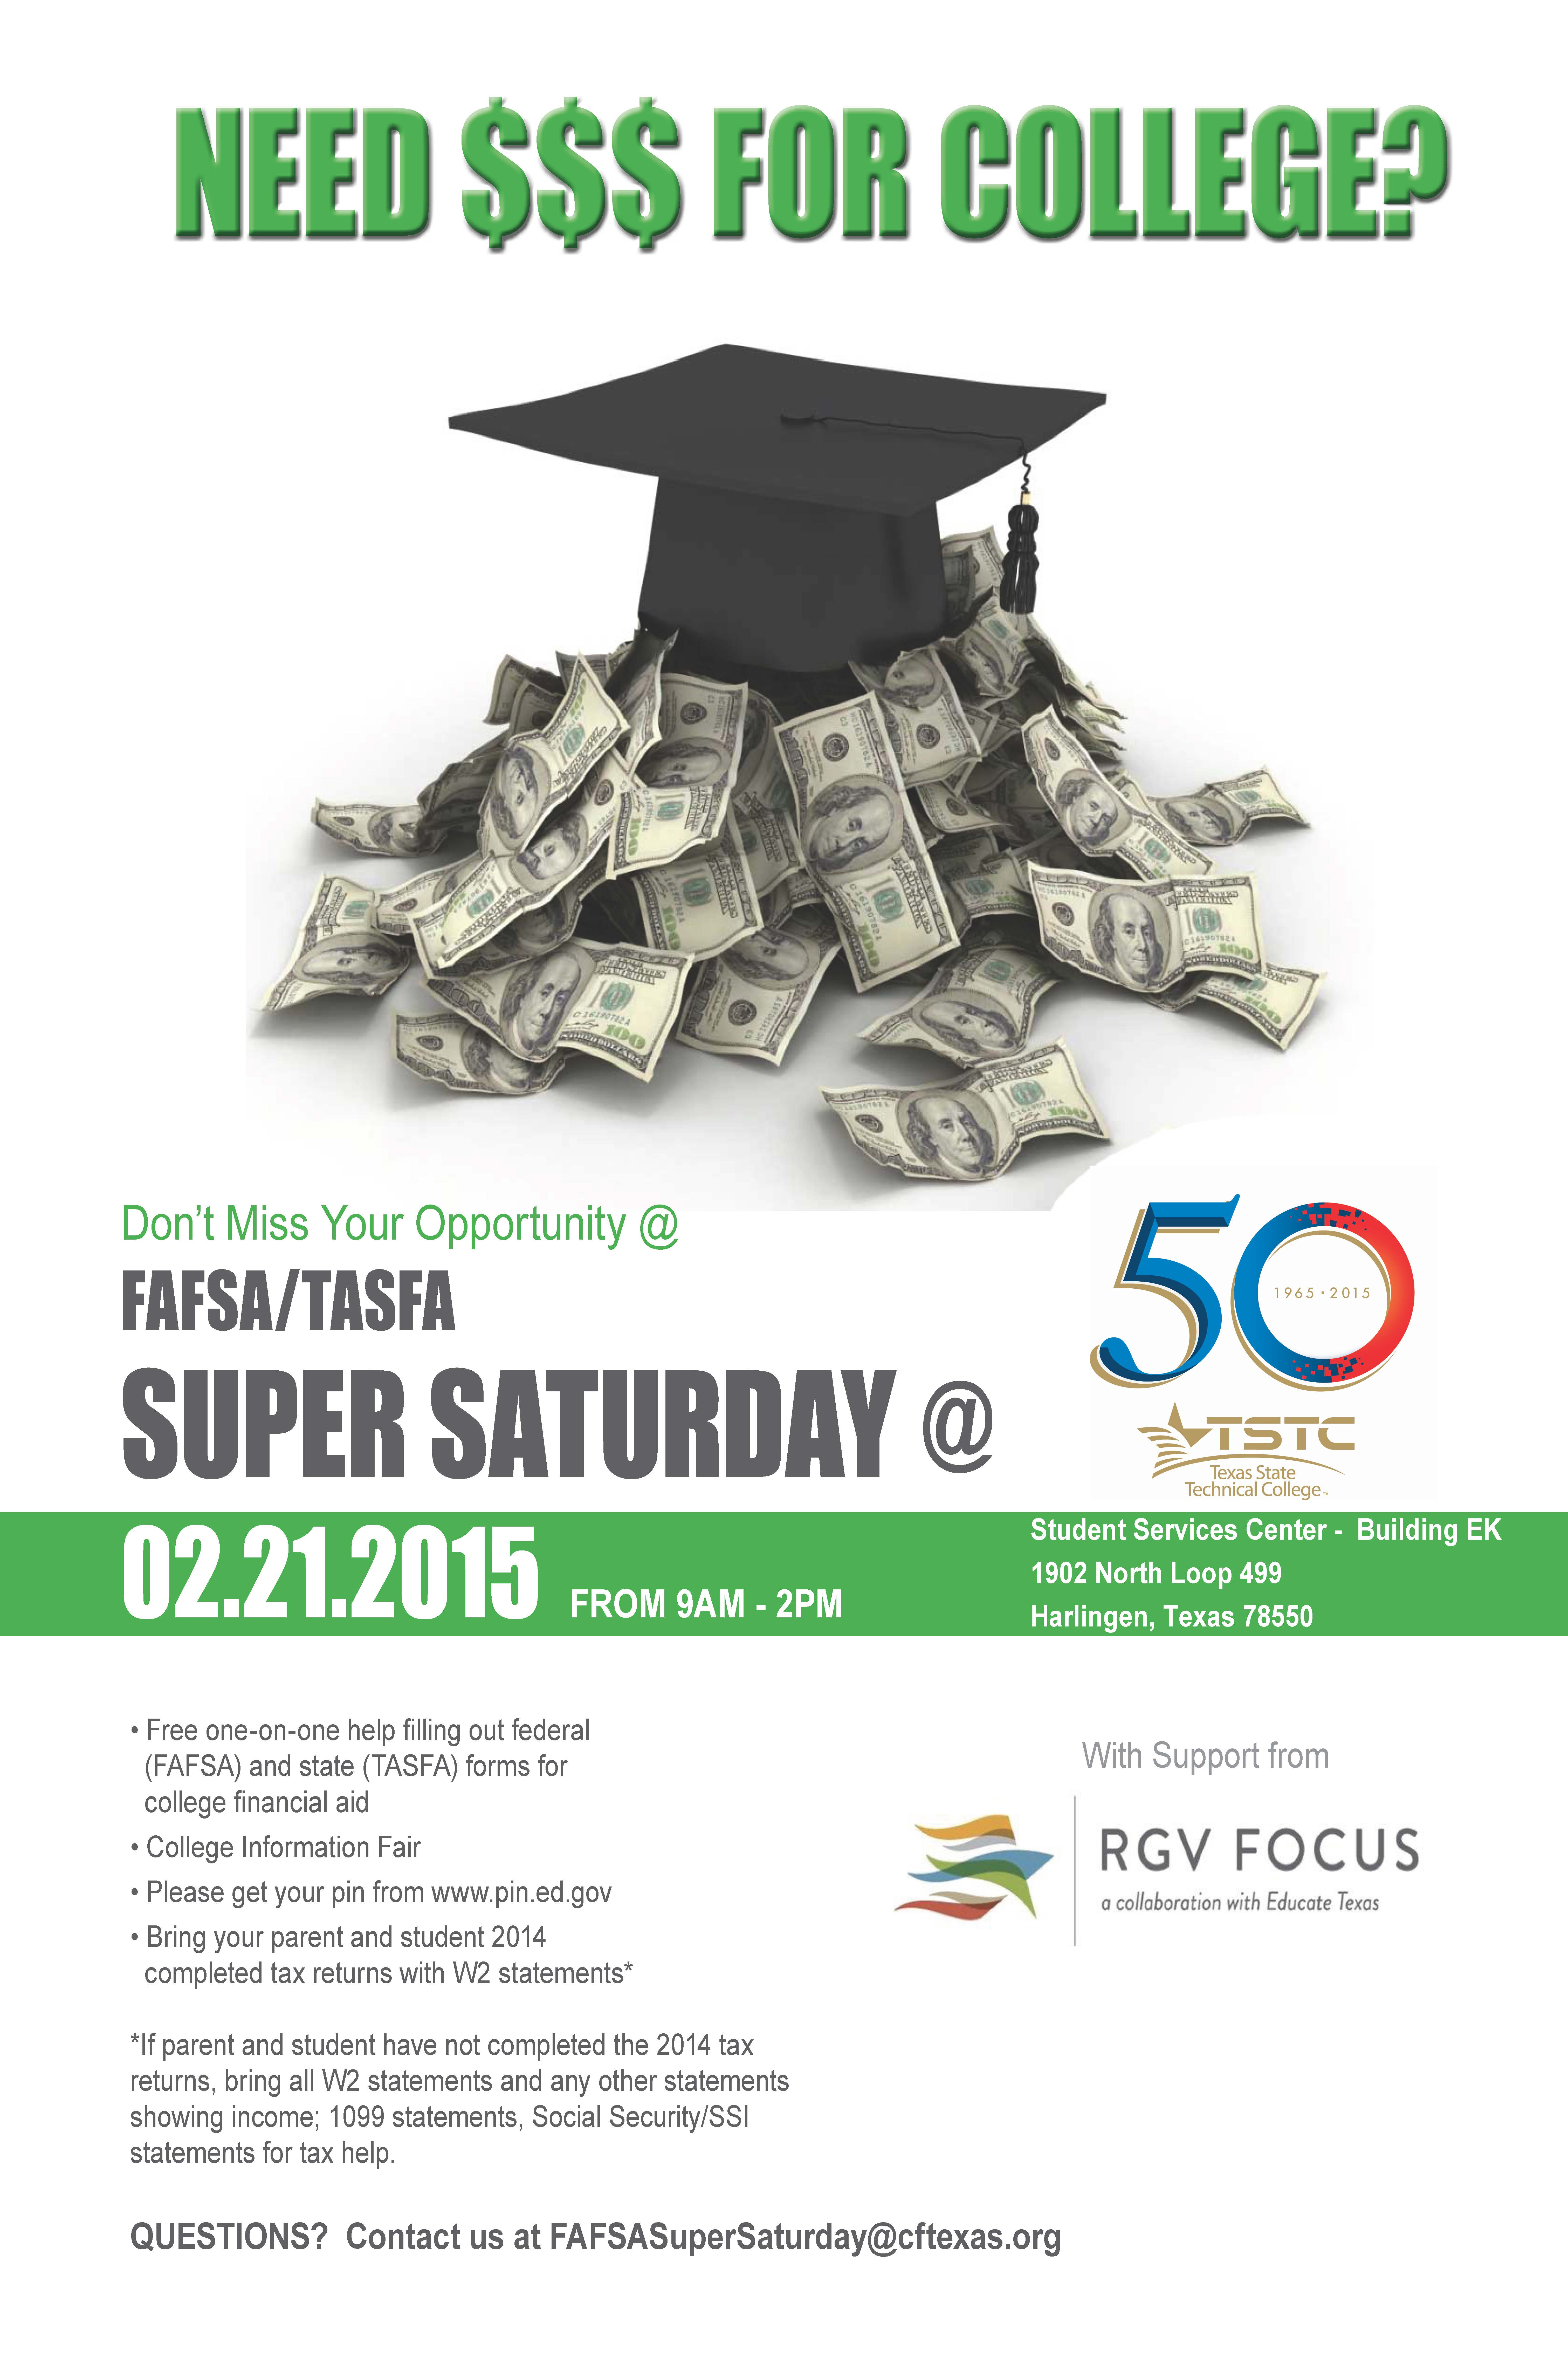 Need money for college? Don't miss your opportunity at the 2nd annual FAFSA/TASFA Super Saturday